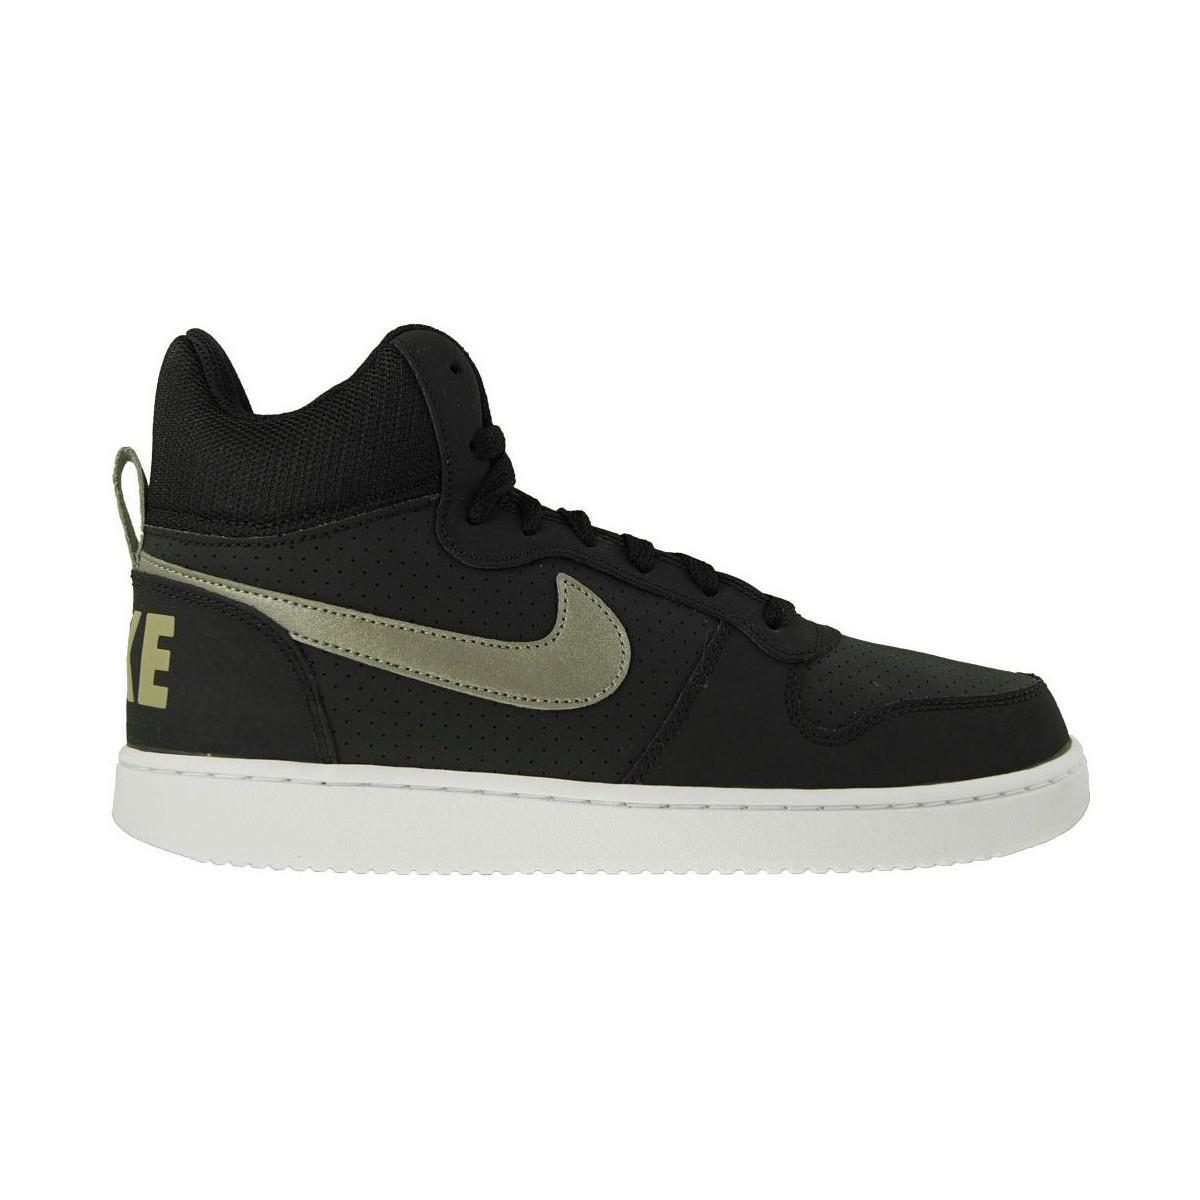 lyst nike court borough mid men 39 s shoes high top trainers in white in white for men. Black Bedroom Furniture Sets. Home Design Ideas